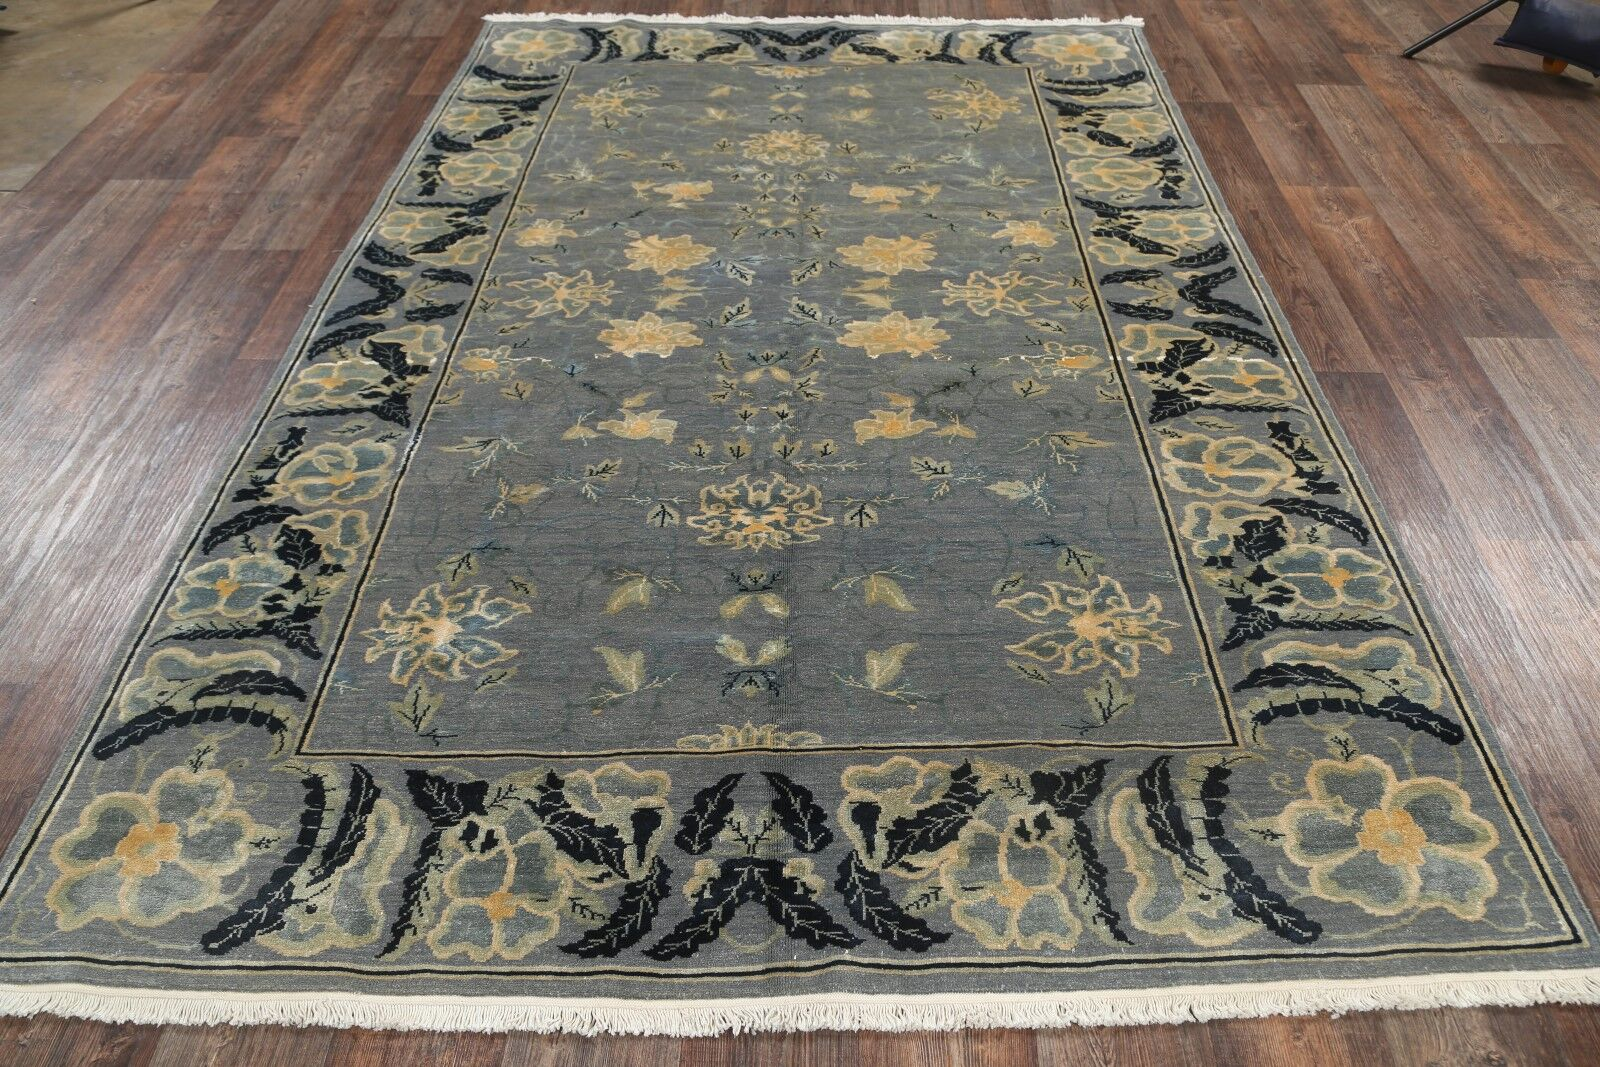 One-of-a-Kind Bathurst Agra Egypt Oriental Hand-Knotted Wool Gray/Charcoal Area Rug